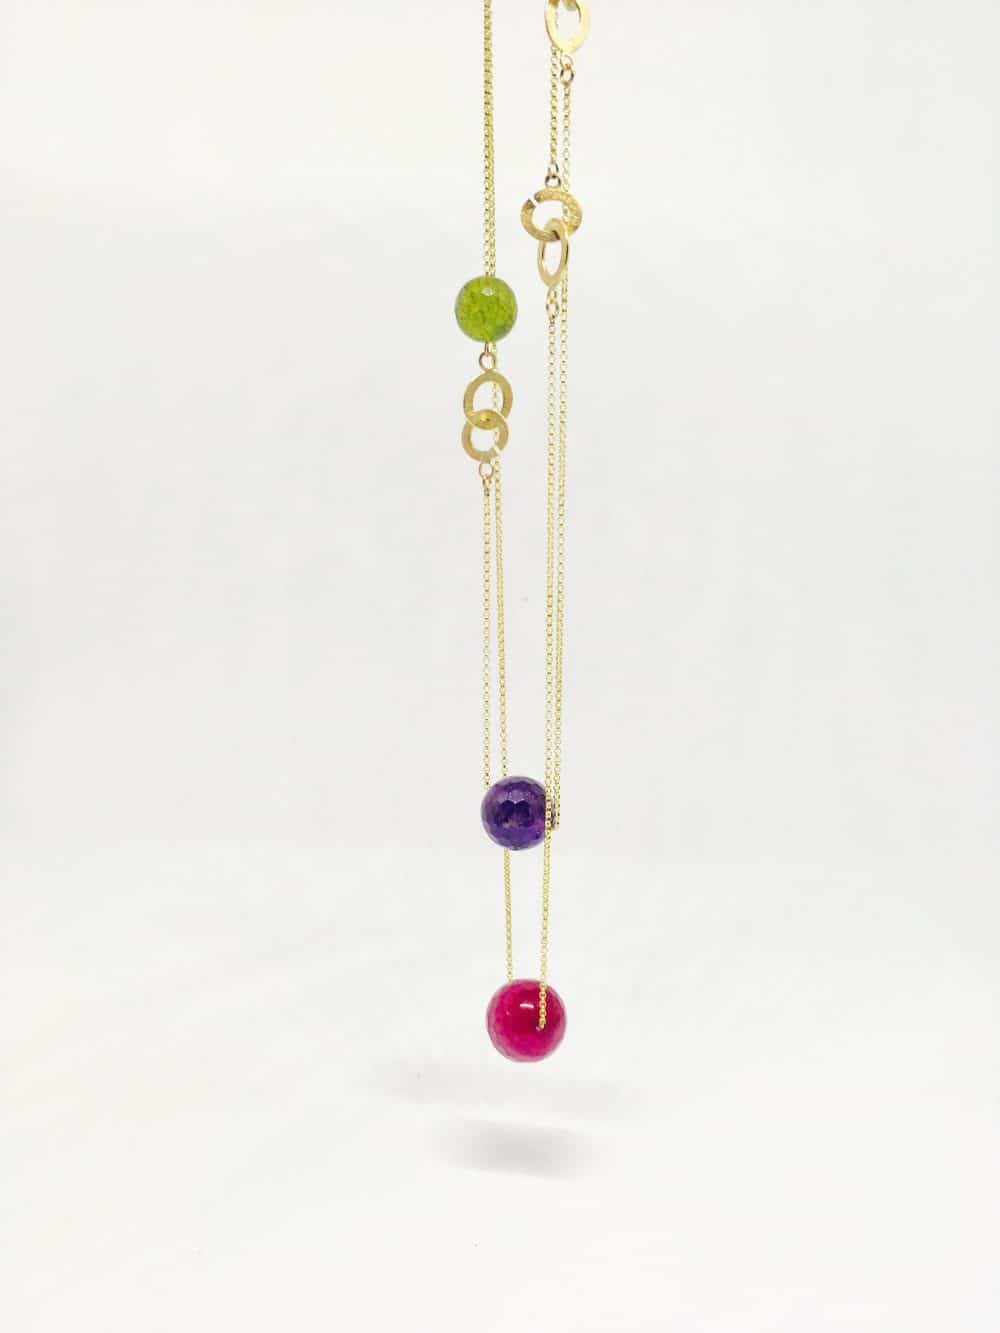 necklaces by jewellery designer Barbara Laws, jewelry, Fashion Tours London, fashion walks for fashionistas